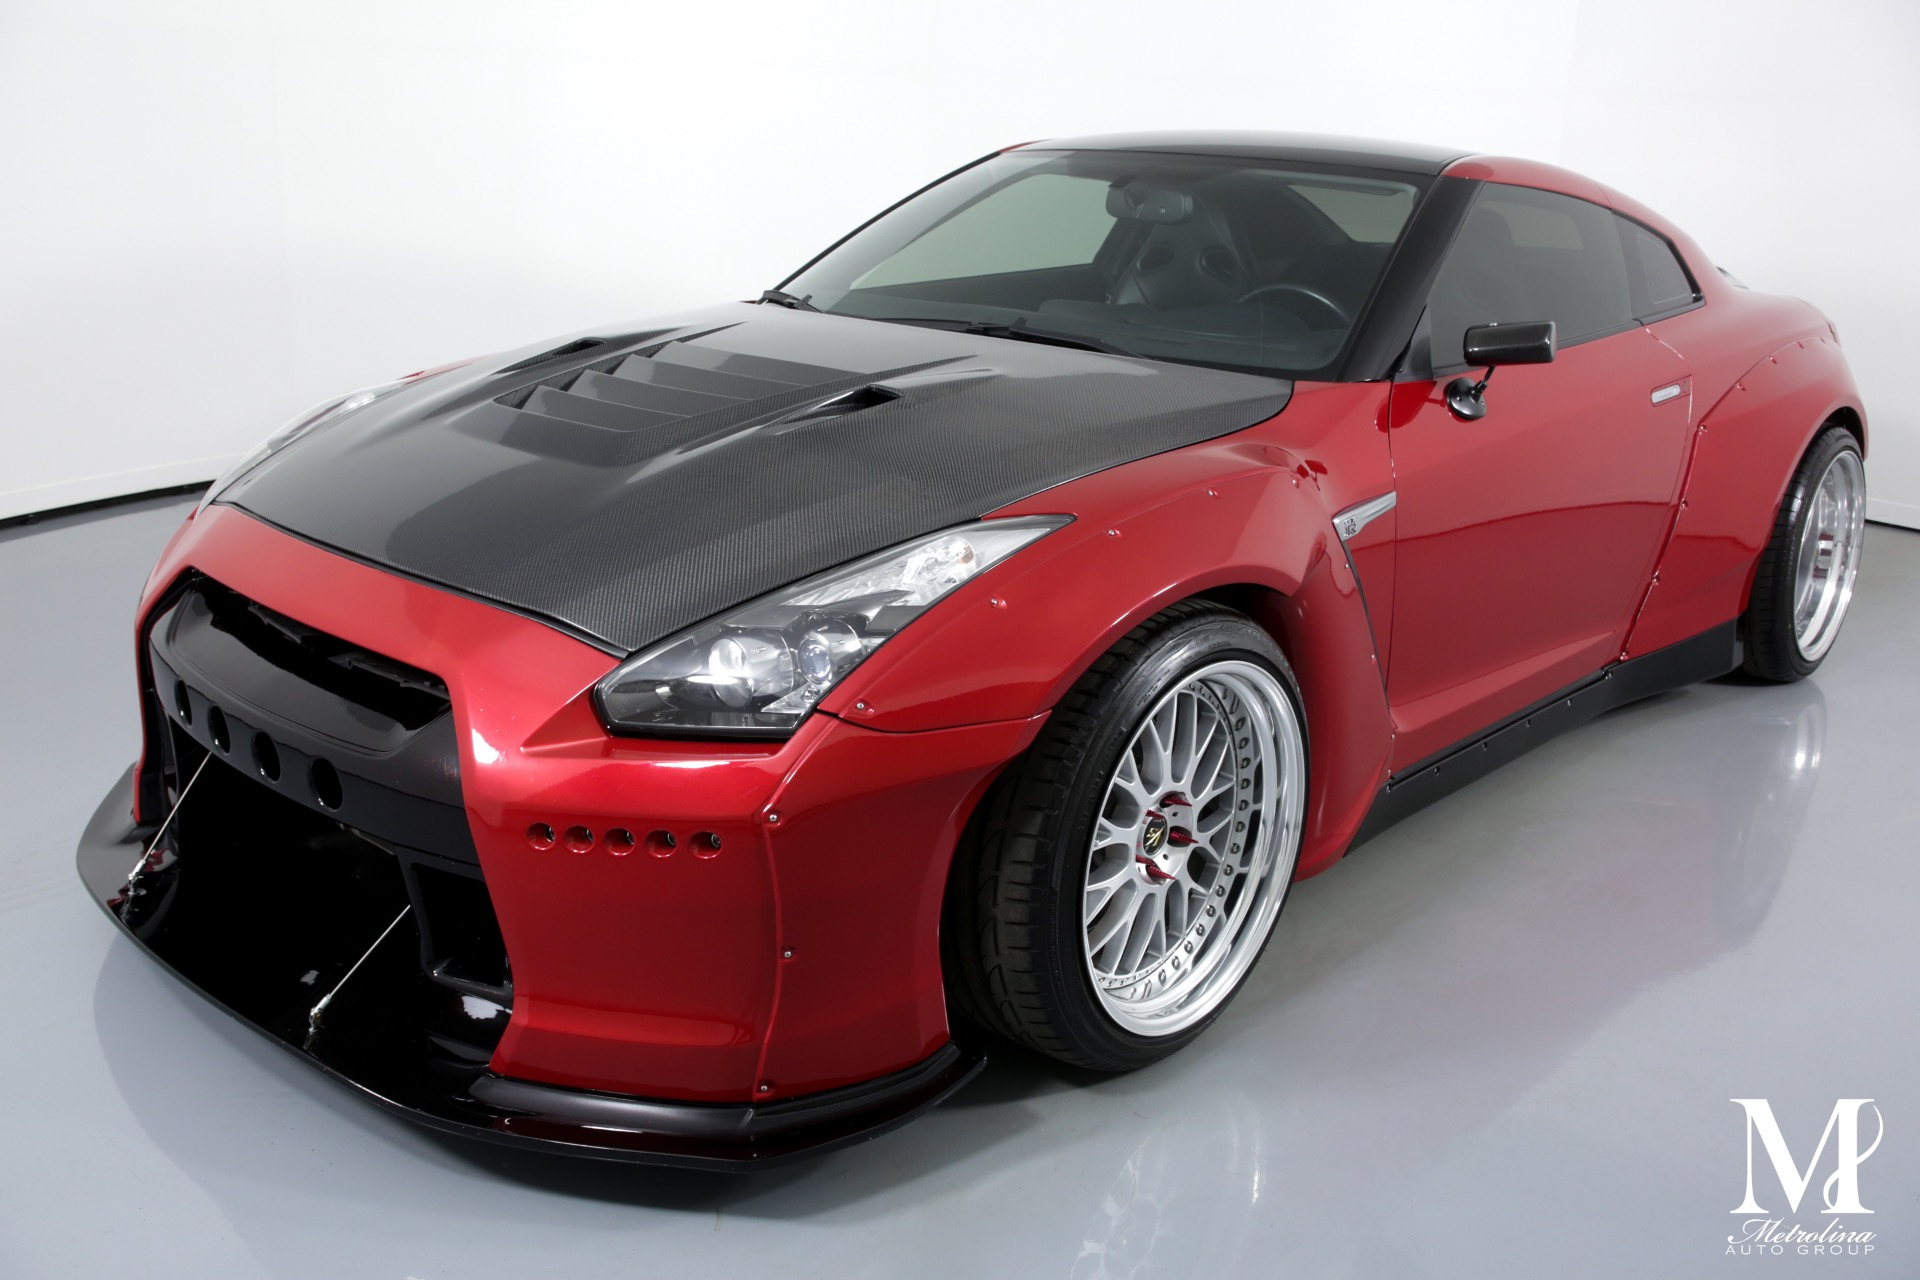 Used 2009 Nissan GT-R Premium for sale $84,996 at Metrolina Auto Group in Charlotte NC 28217 - 4